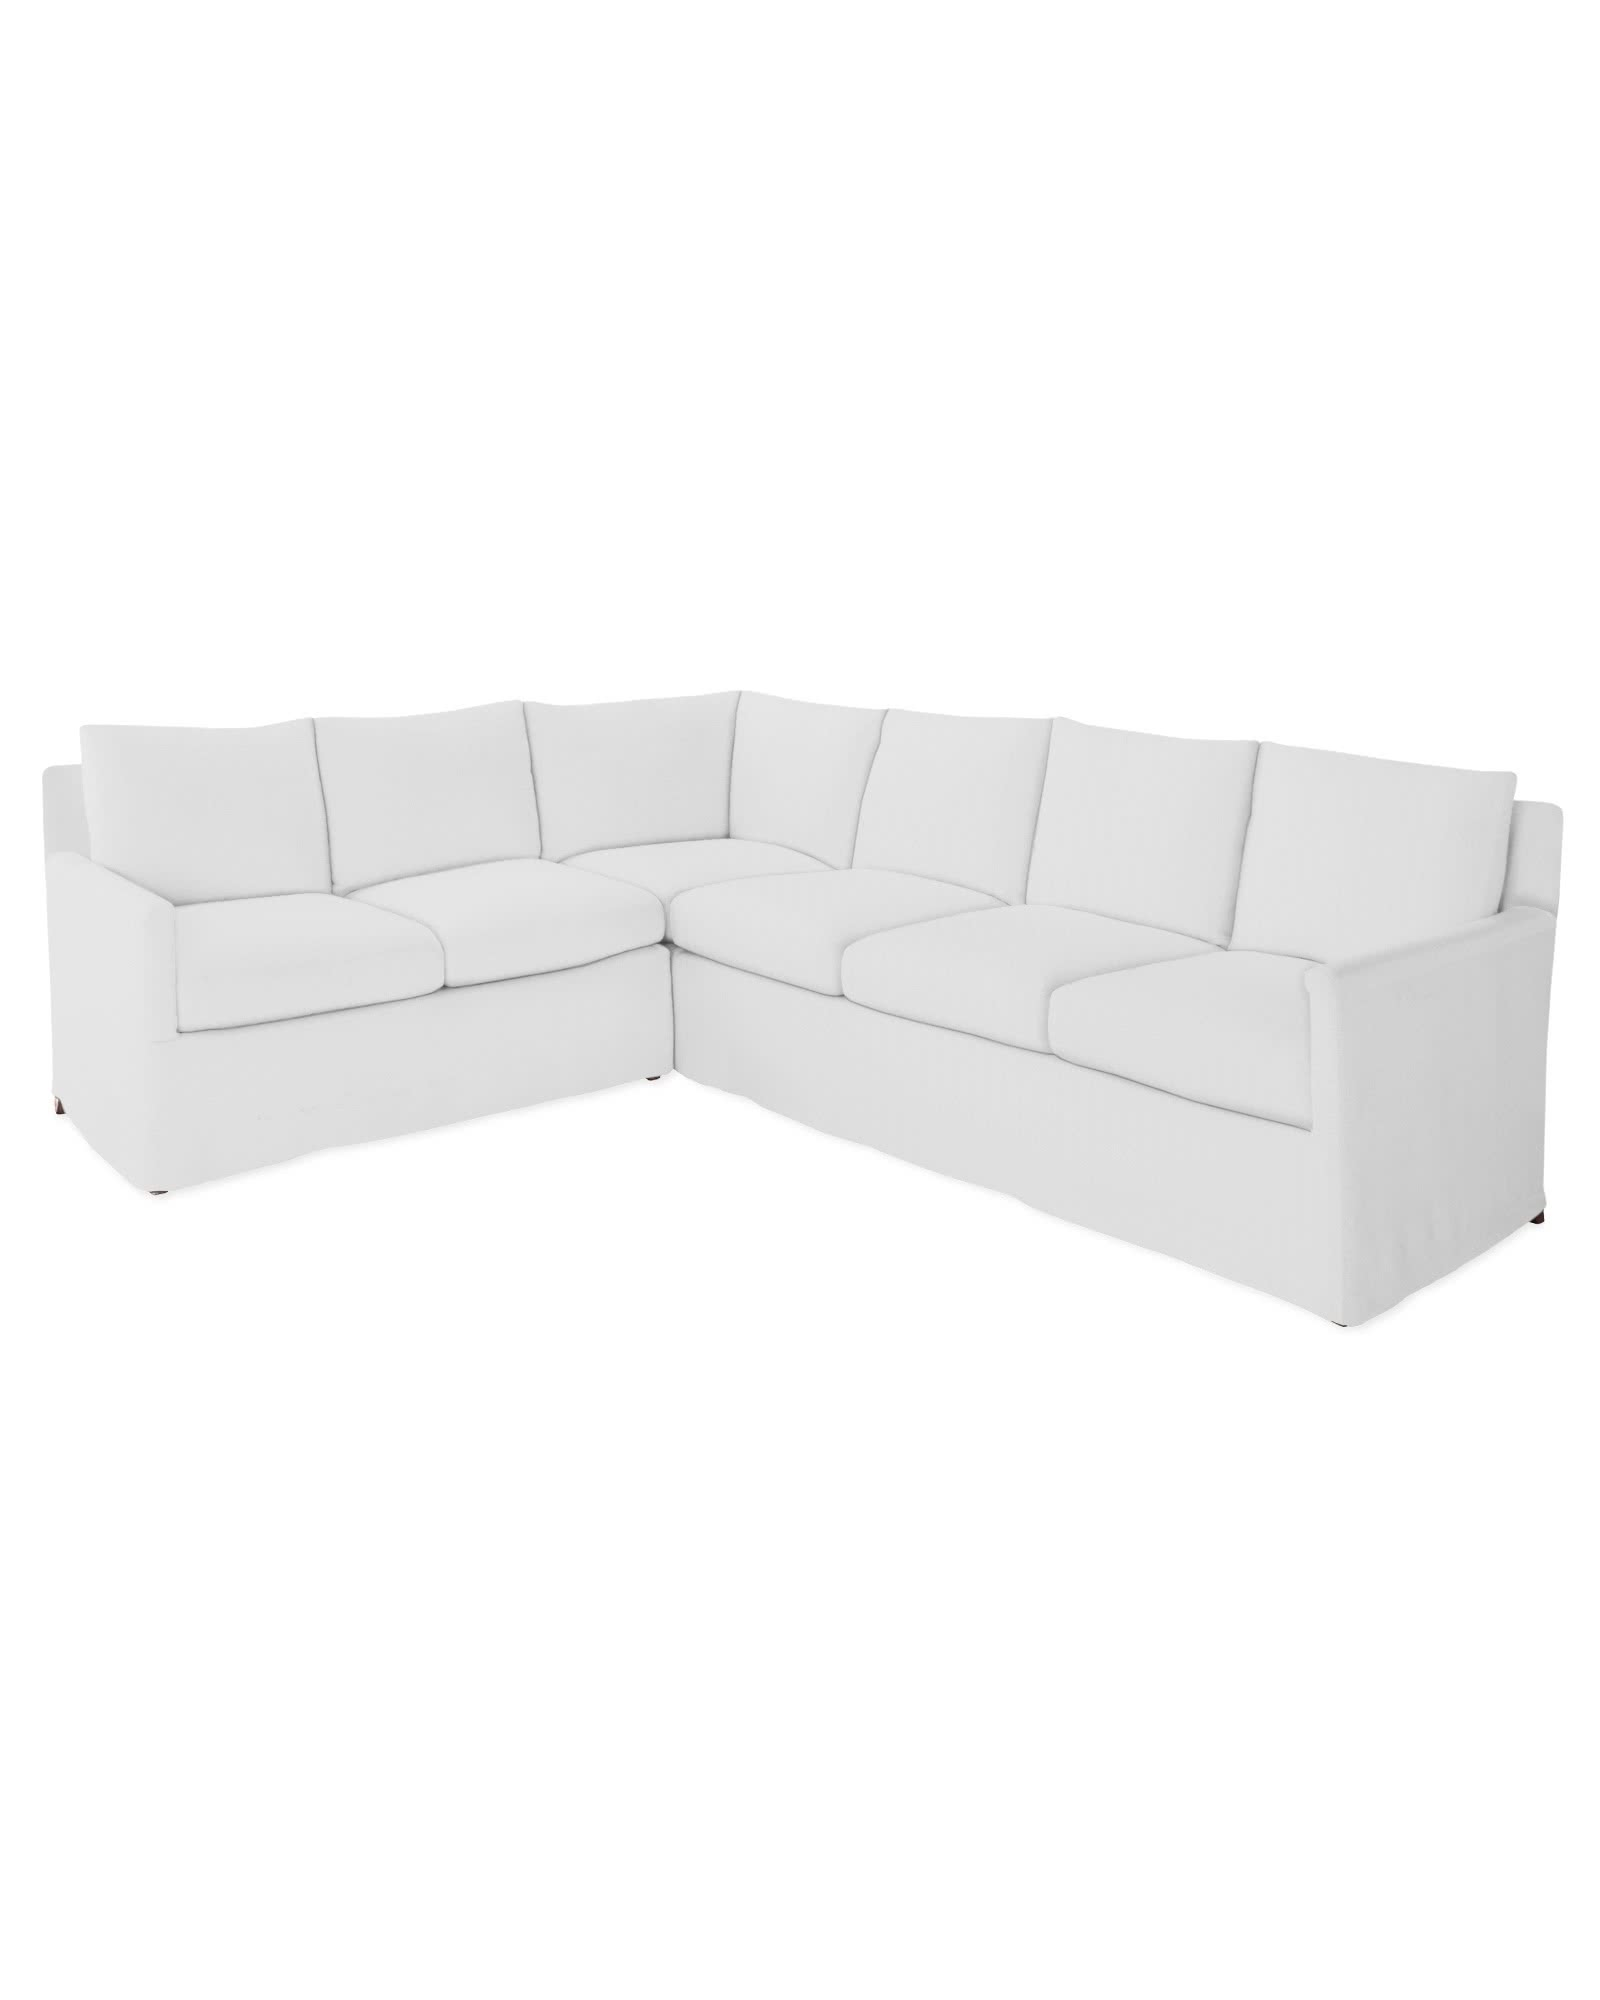 Spruce Street Left-Facing L-Sectional – Slipcovered